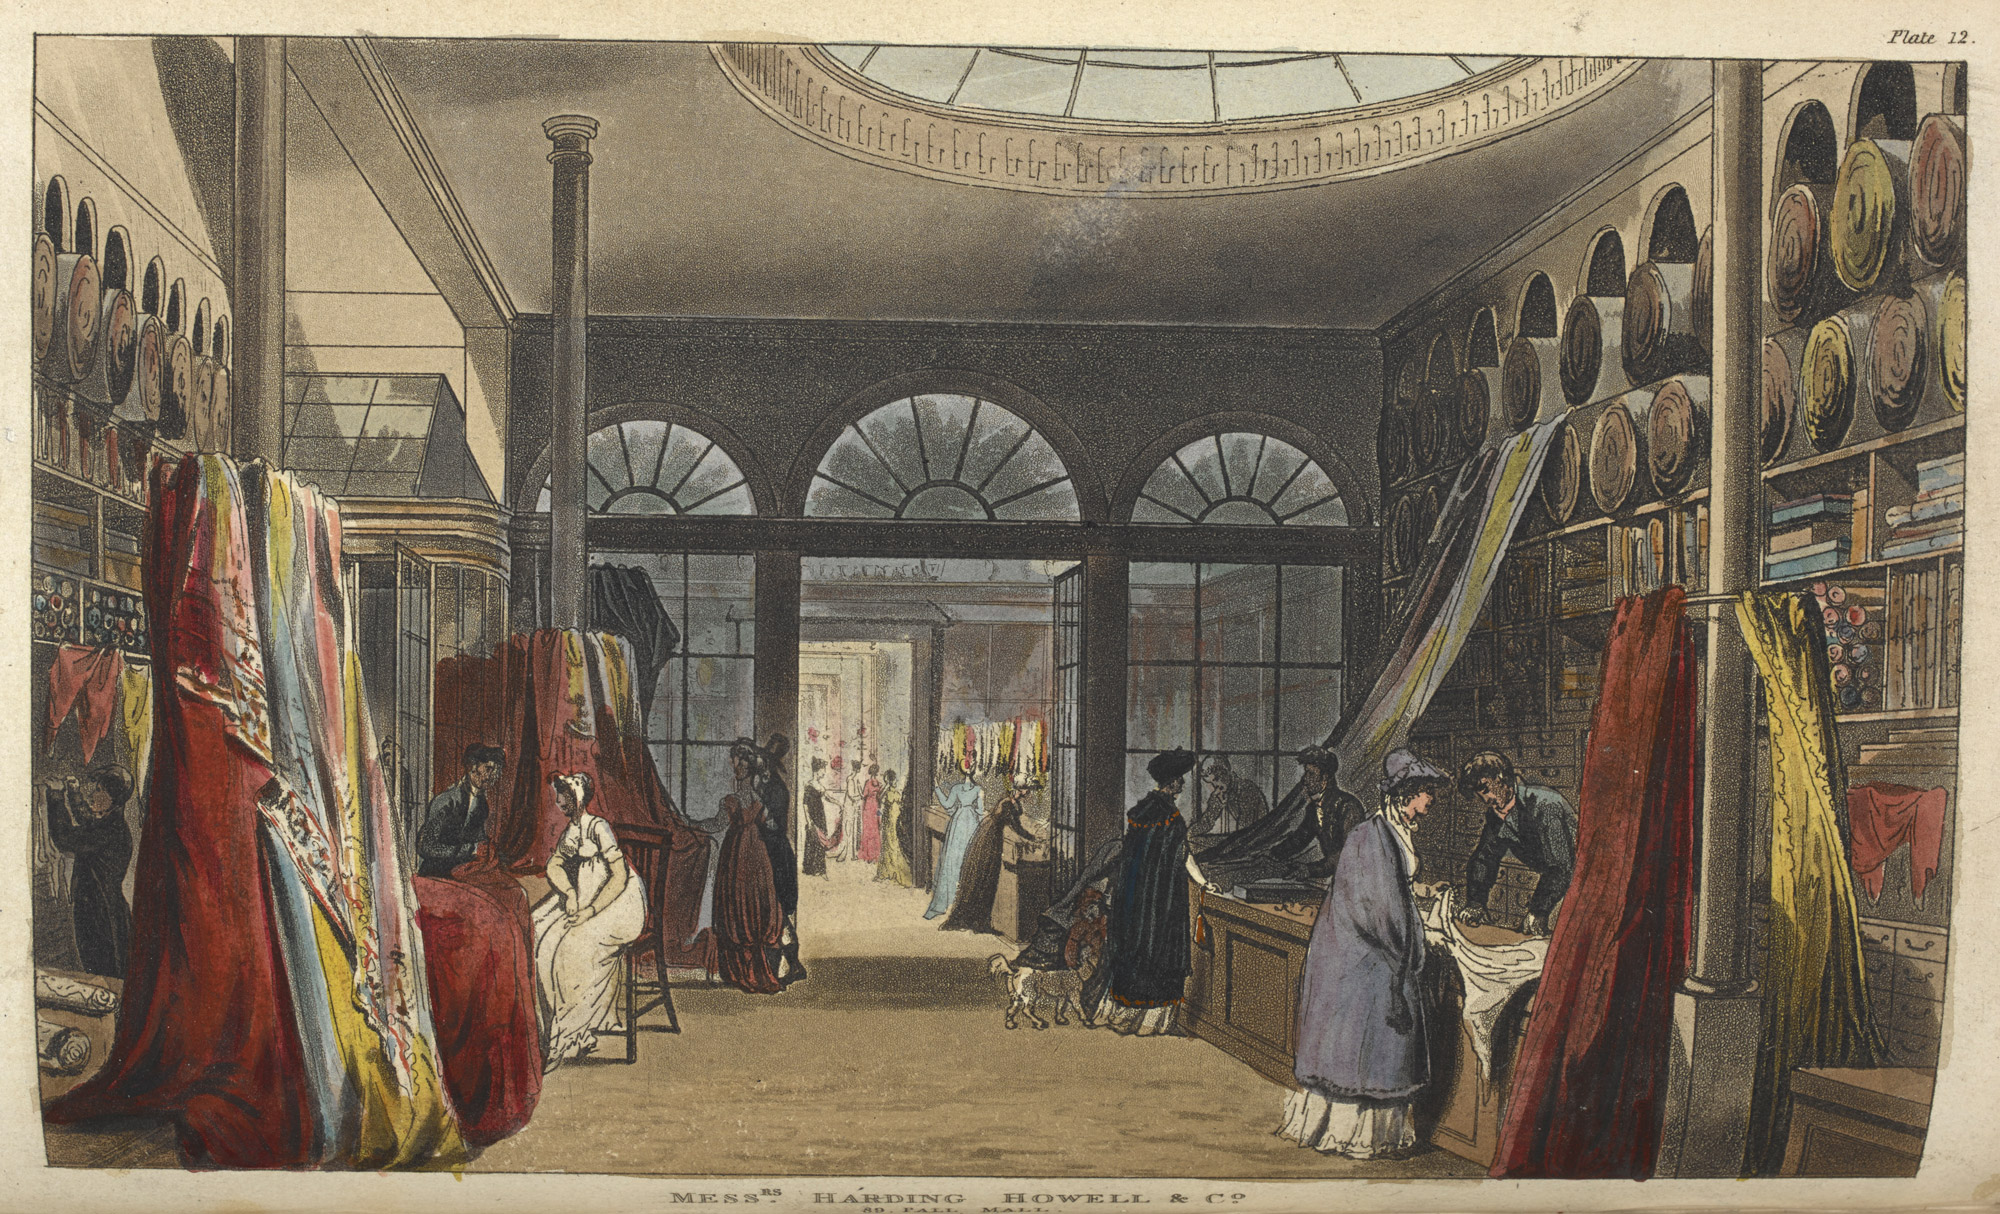 Shopping for fabric, 1809